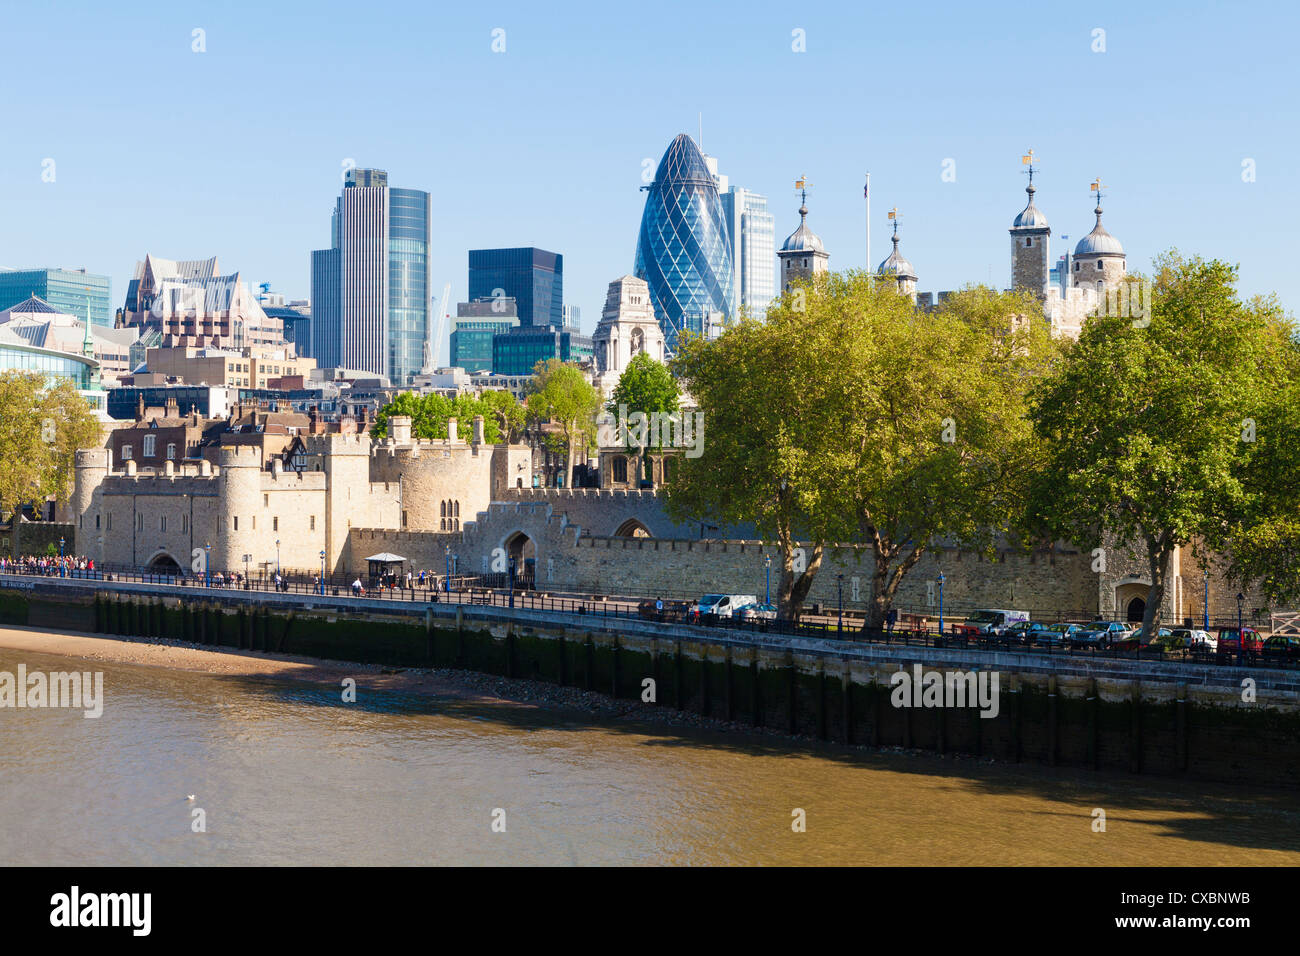 City of London financial district buildings and the Tower of London, London, England, United Kingdom, Europe - Stock Image